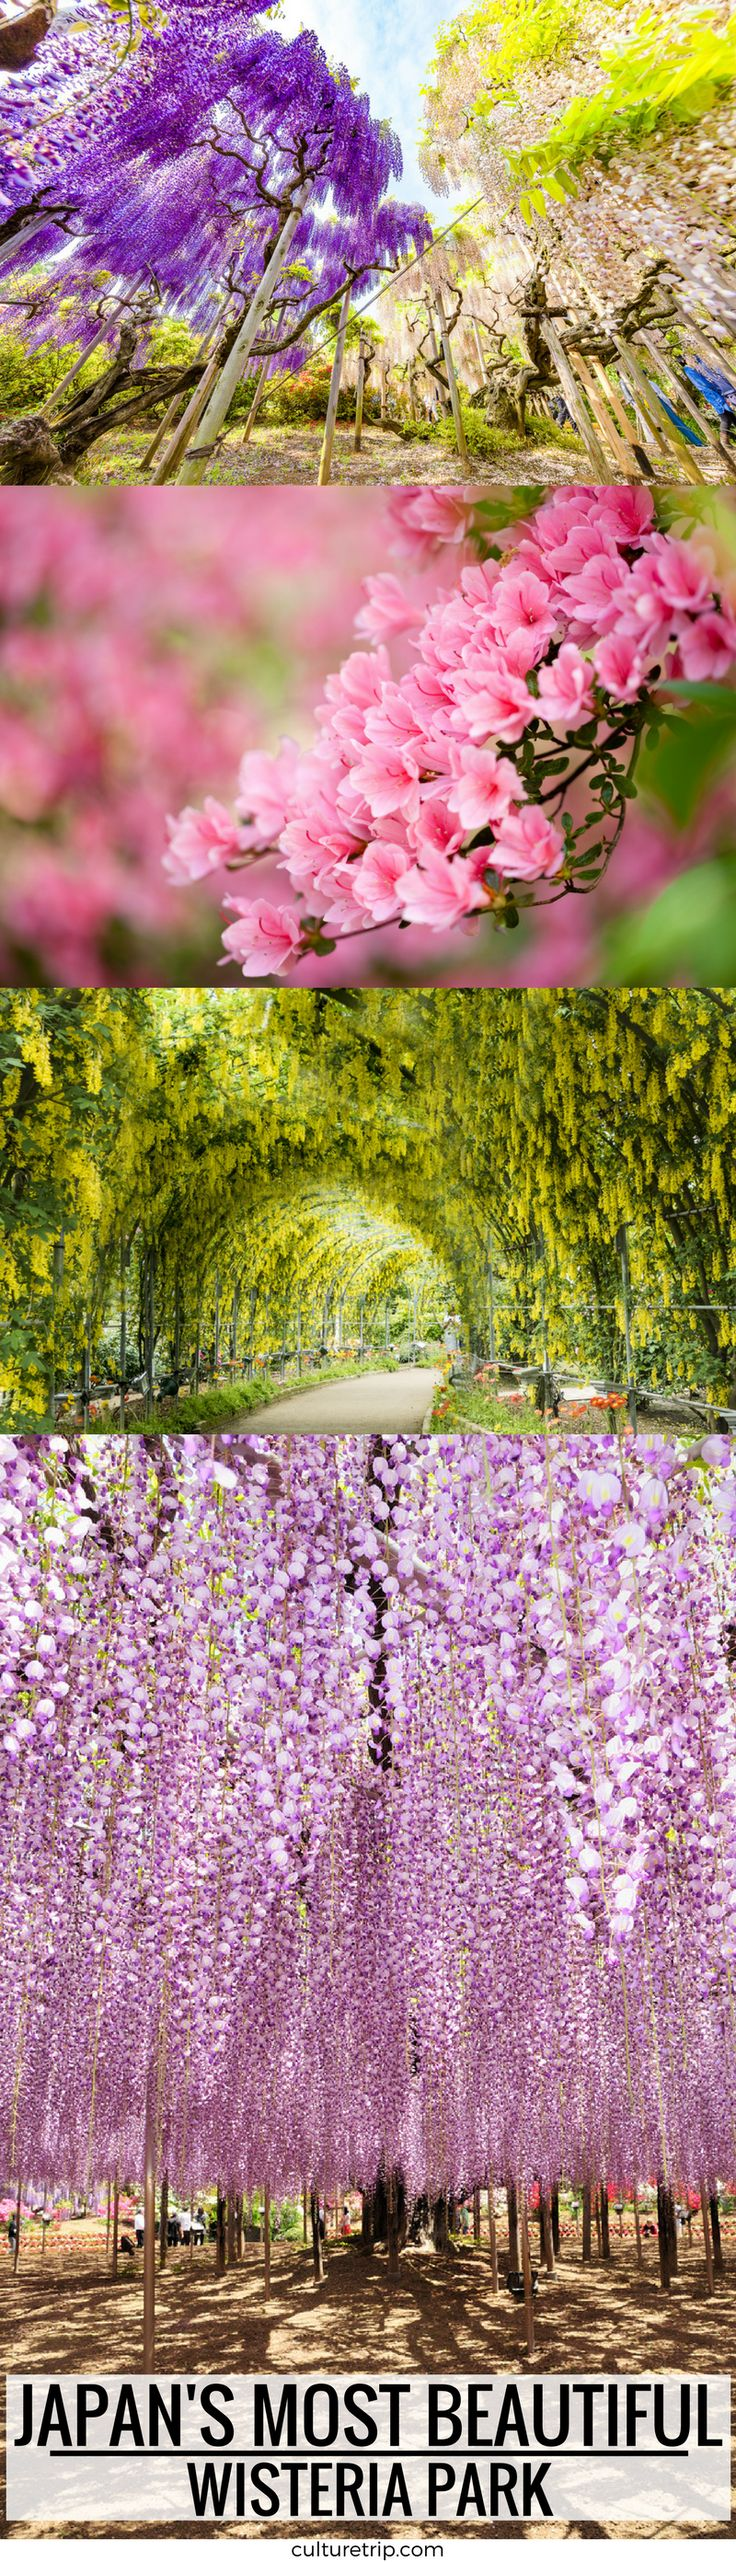 This Japanese Wisteria Park Is The Most Beautiful Thing You'll See Today